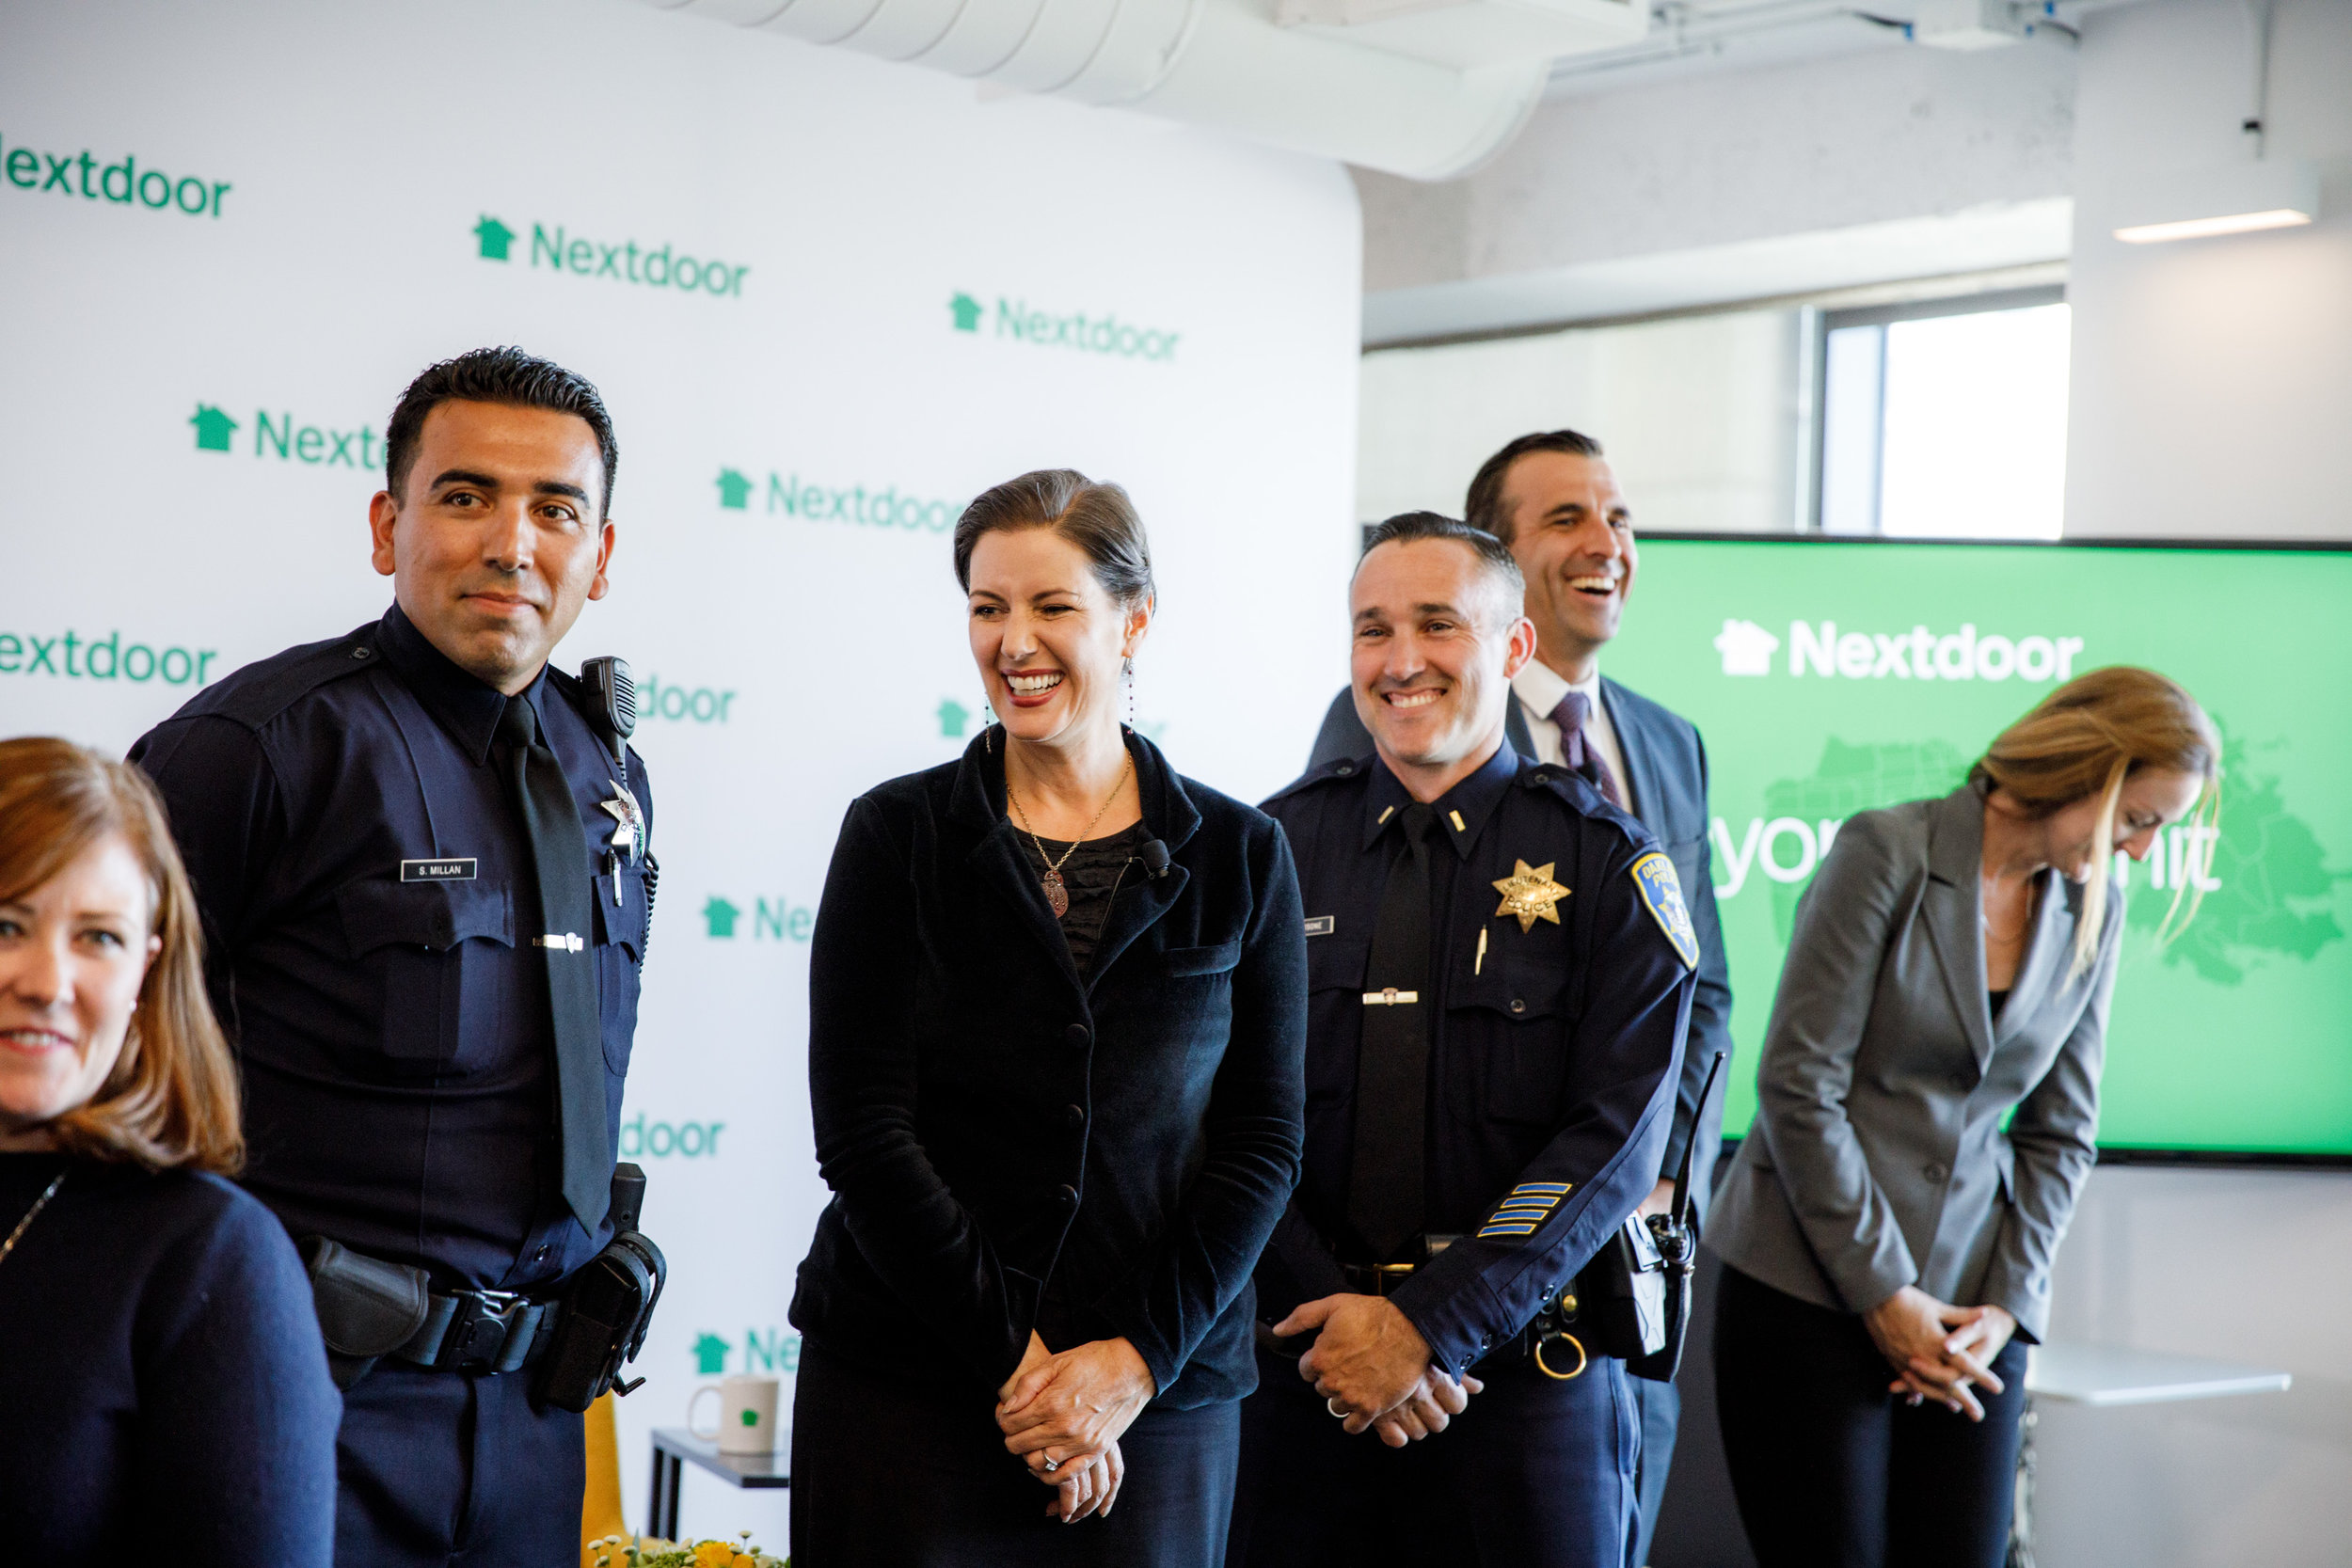 Nextdoor_MayorSummit_8-1-18-118.jpg